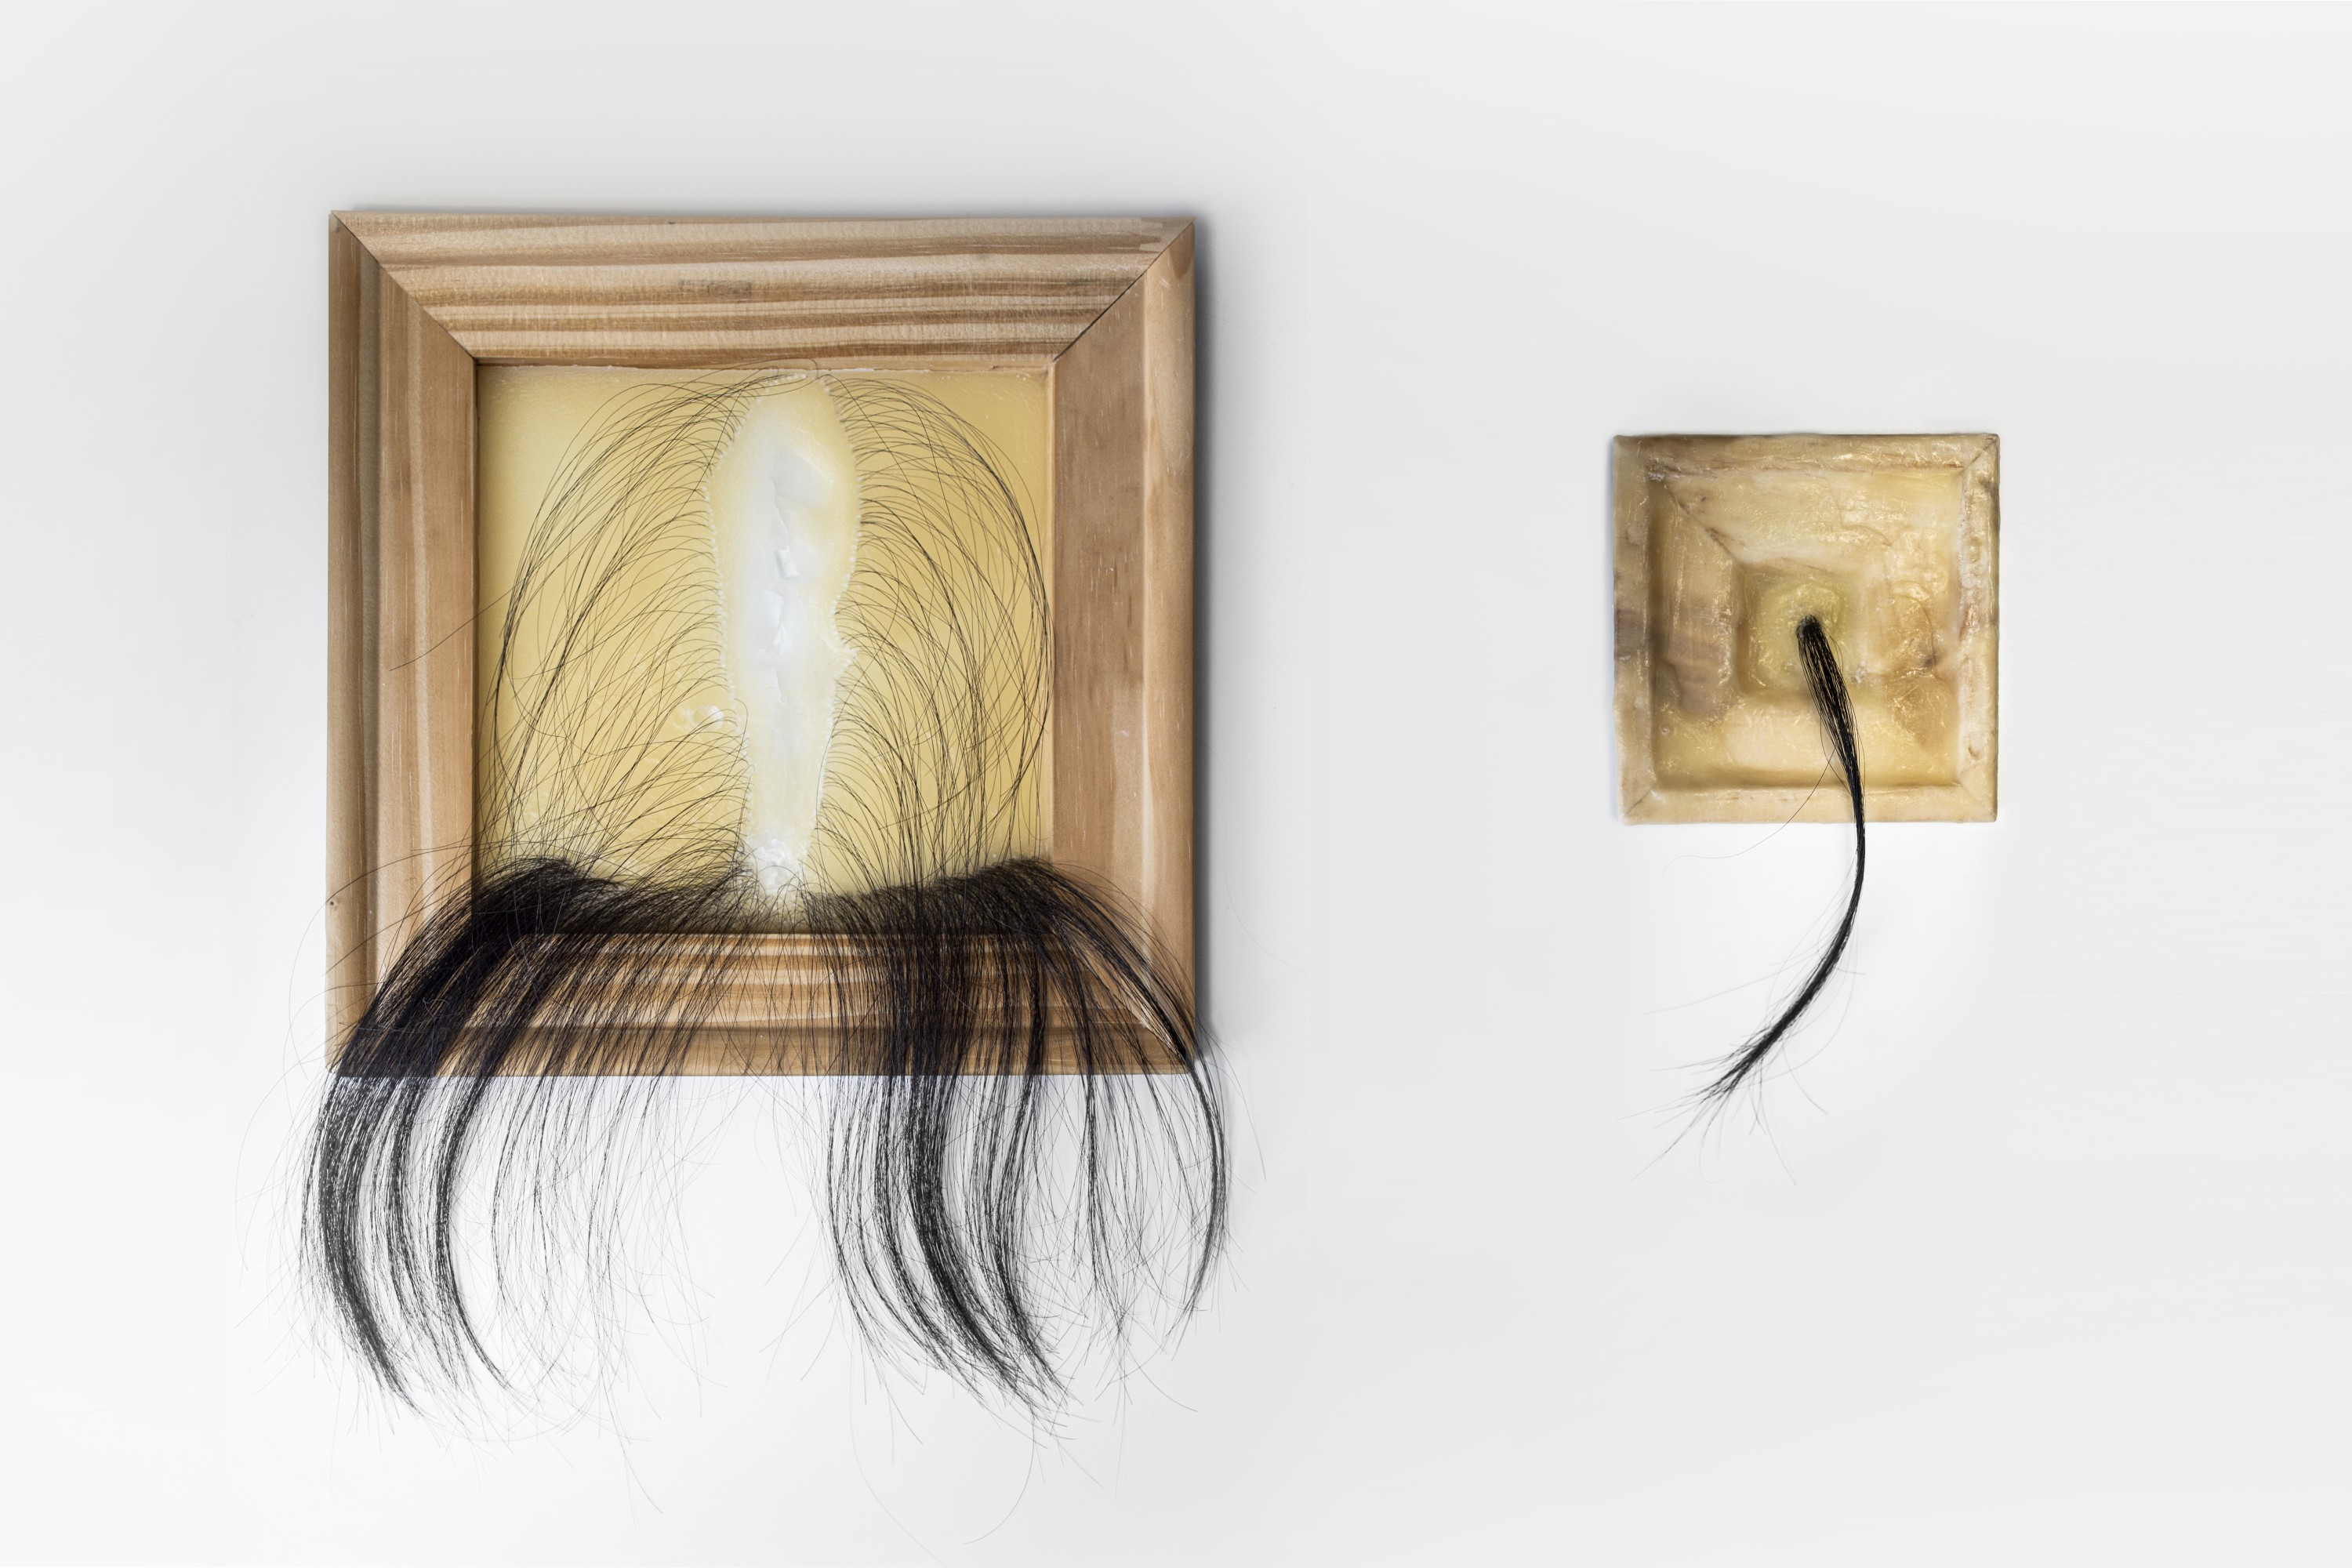 This work contains two parts, one Framed wax and one wax-covered frame with implanted hair that naturally falls every day.